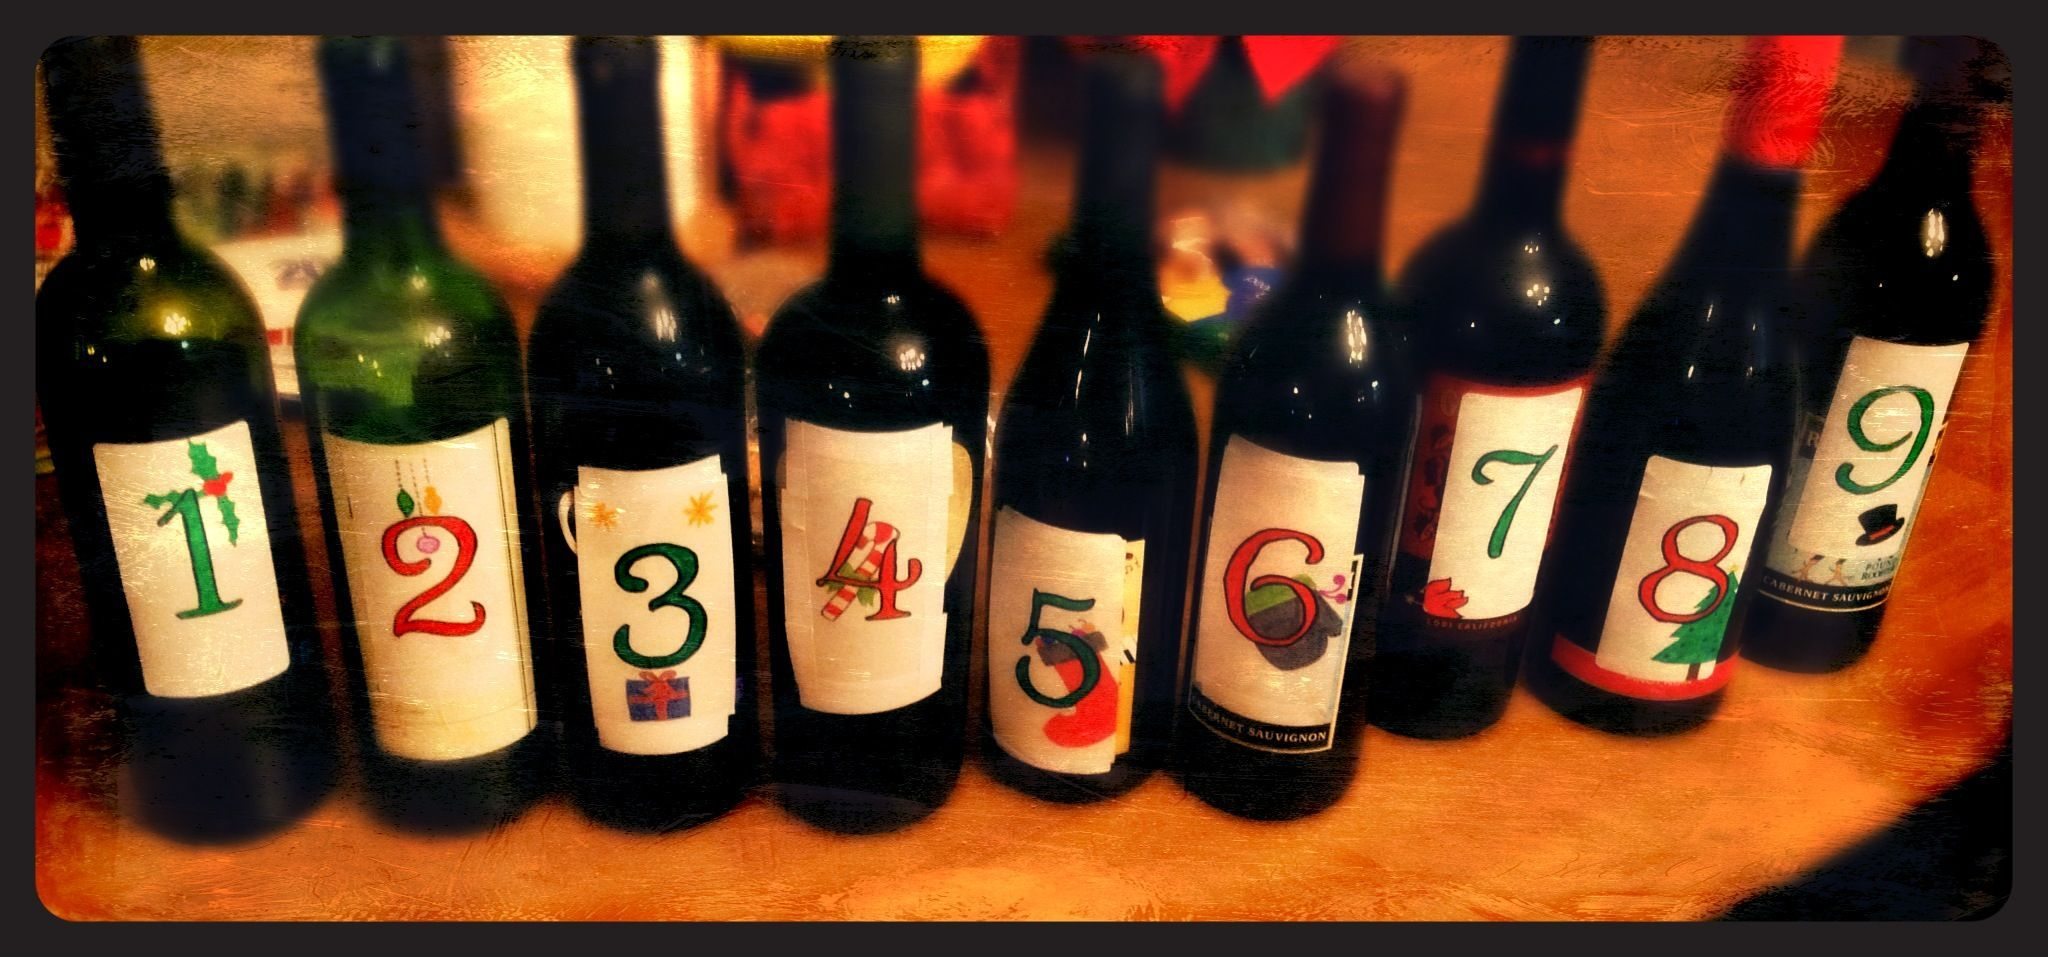 Wine Advent Calendar. So easy and such a fun idea for traditions with friends and family! Make your own labels to make it even more special. Can you make it all the way to December 24th? #wineadventcalendardiy Wine Advent Calendar. So easy and such a fun idea for traditions with friends and family! Make your own labels to make it even more special. Can you make it all the way to December 24th? #wineadventcalendardiy